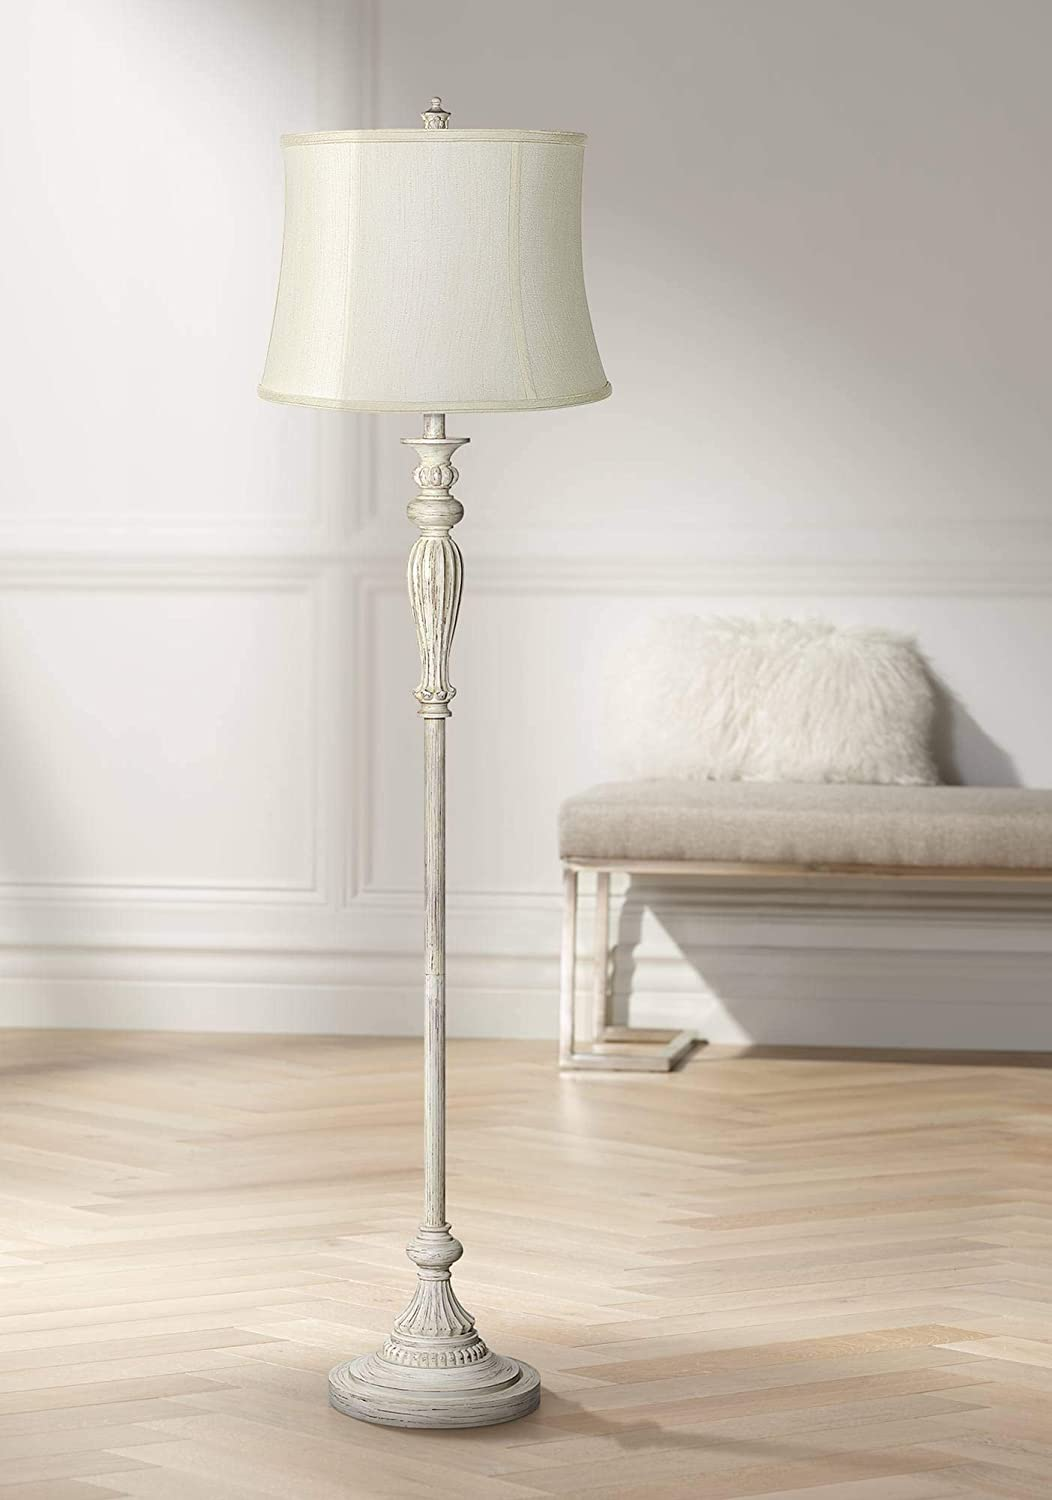 Traditional Vintage Shabby Chic Standing Floor Lamp Antique White Burgundy Creme Fabric Drum Shade Decor For Living Room Reading House Bedroom Home Office 360 Lighting